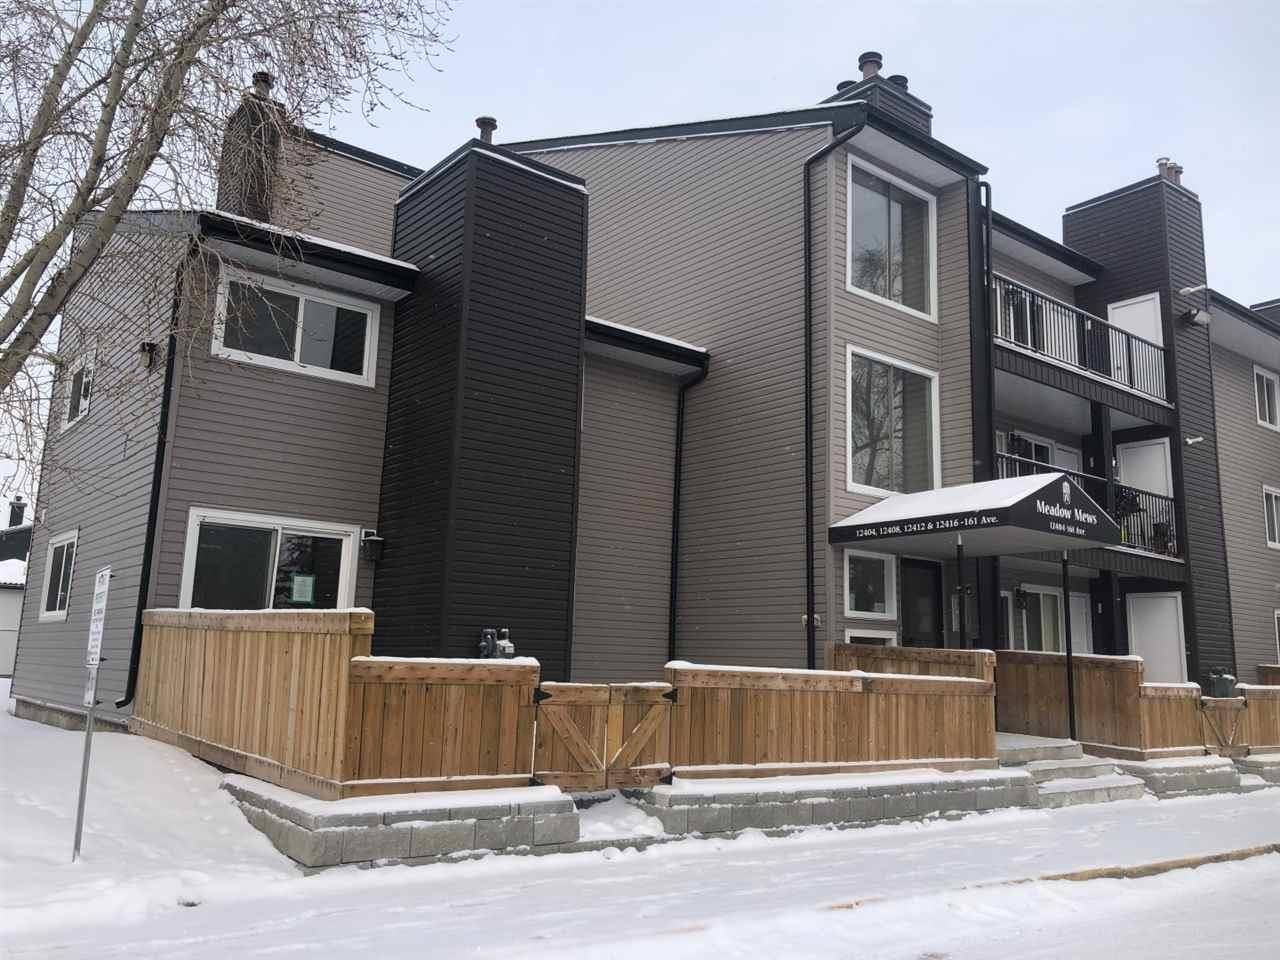 Townhouse for sale at 12404 161 Ave Nw Unit 110 Edmonton Alberta - MLS: E4182470